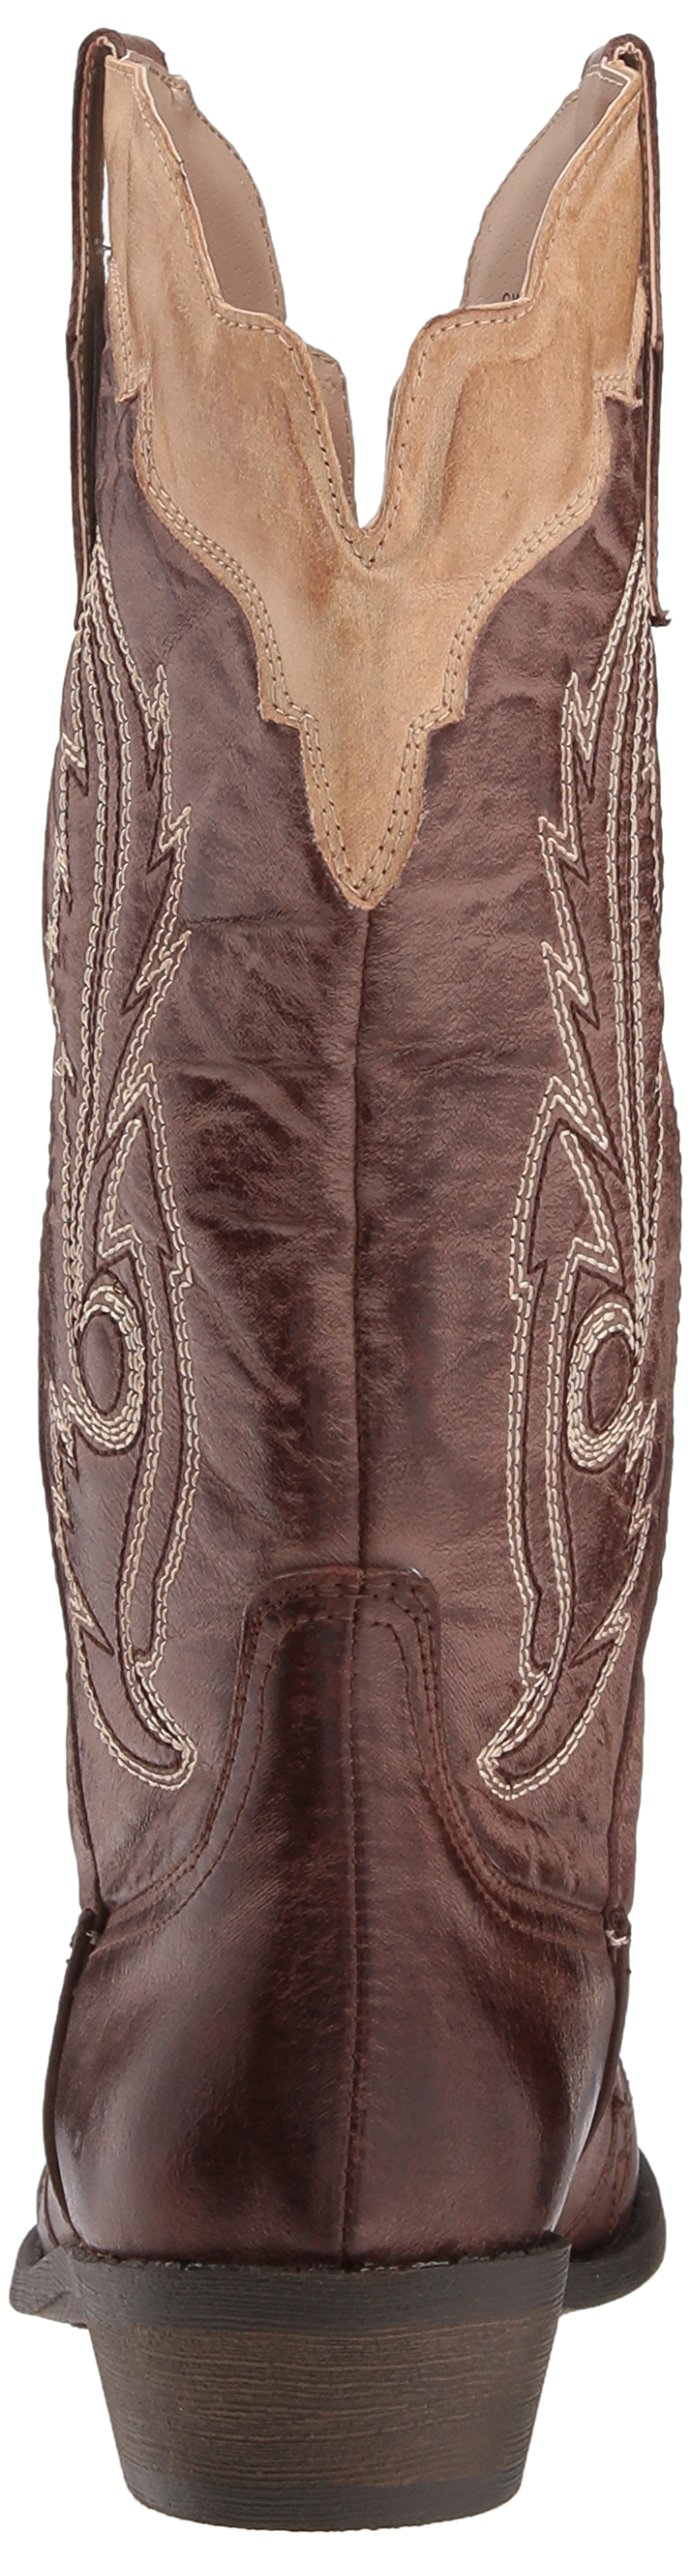 Coconuts by Matisse Women's Cimmaron Boot,Choco/Beige,10 M US by Coconuts by Matisse (Image #2)